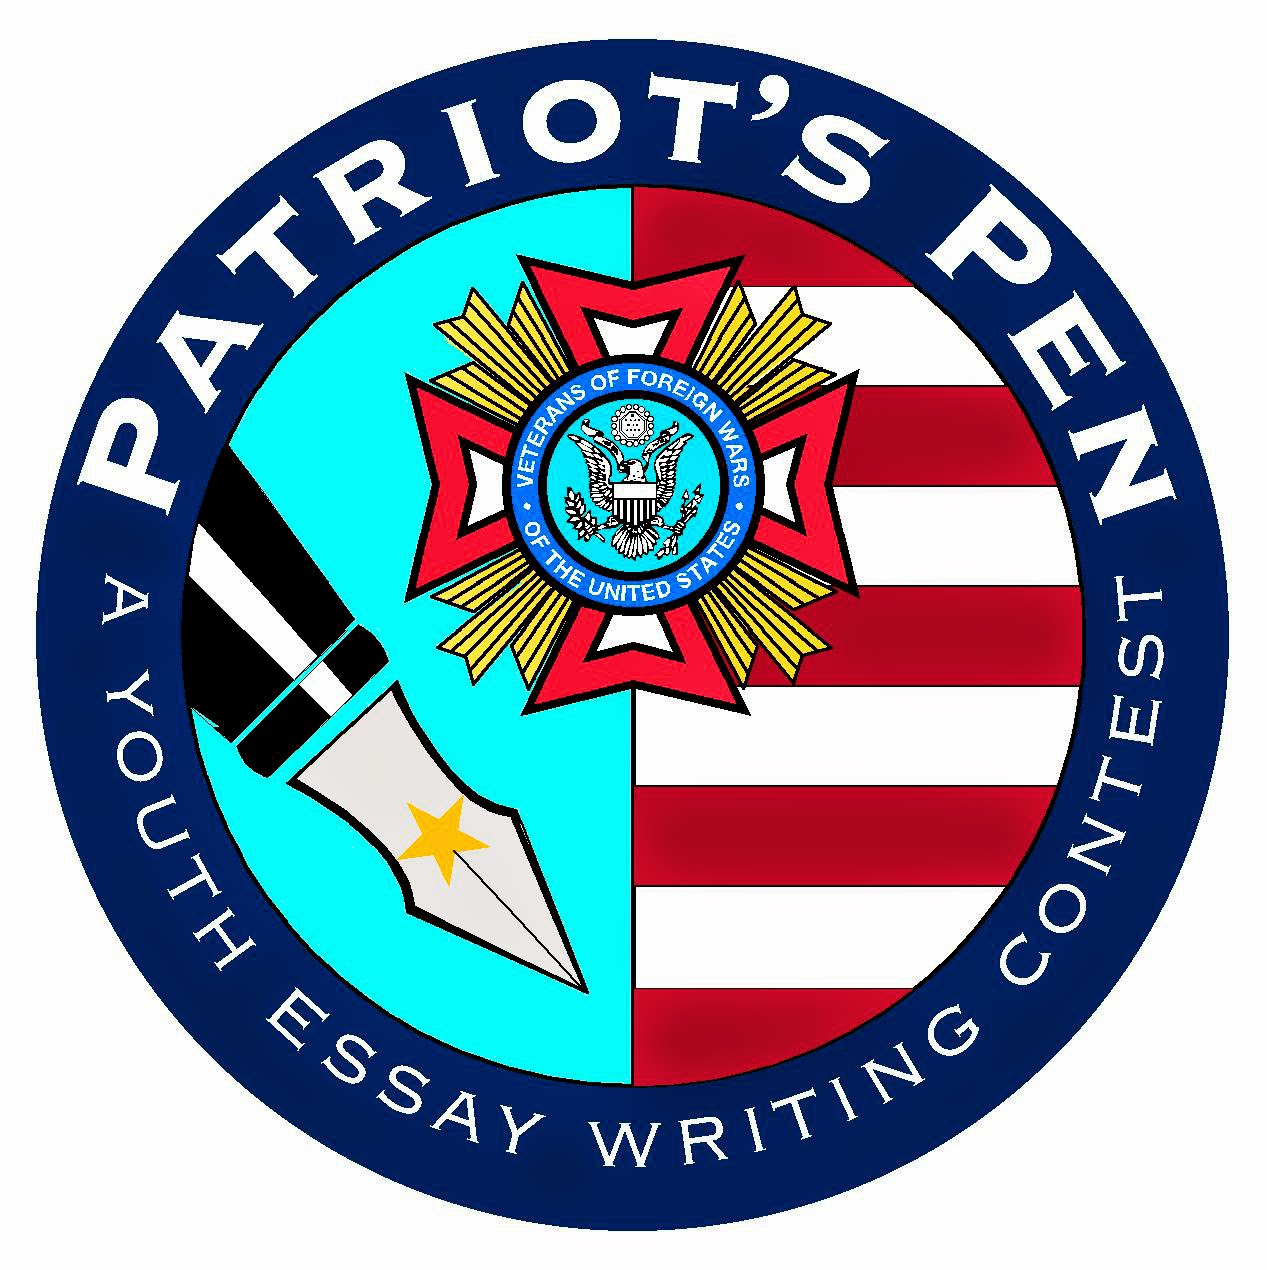 american patriot essay Patriot essays: over 180,000 patriot essays, patriot term papers, patriot research paper, book reports 184 990 essays, term and research papers available for unlimited access.